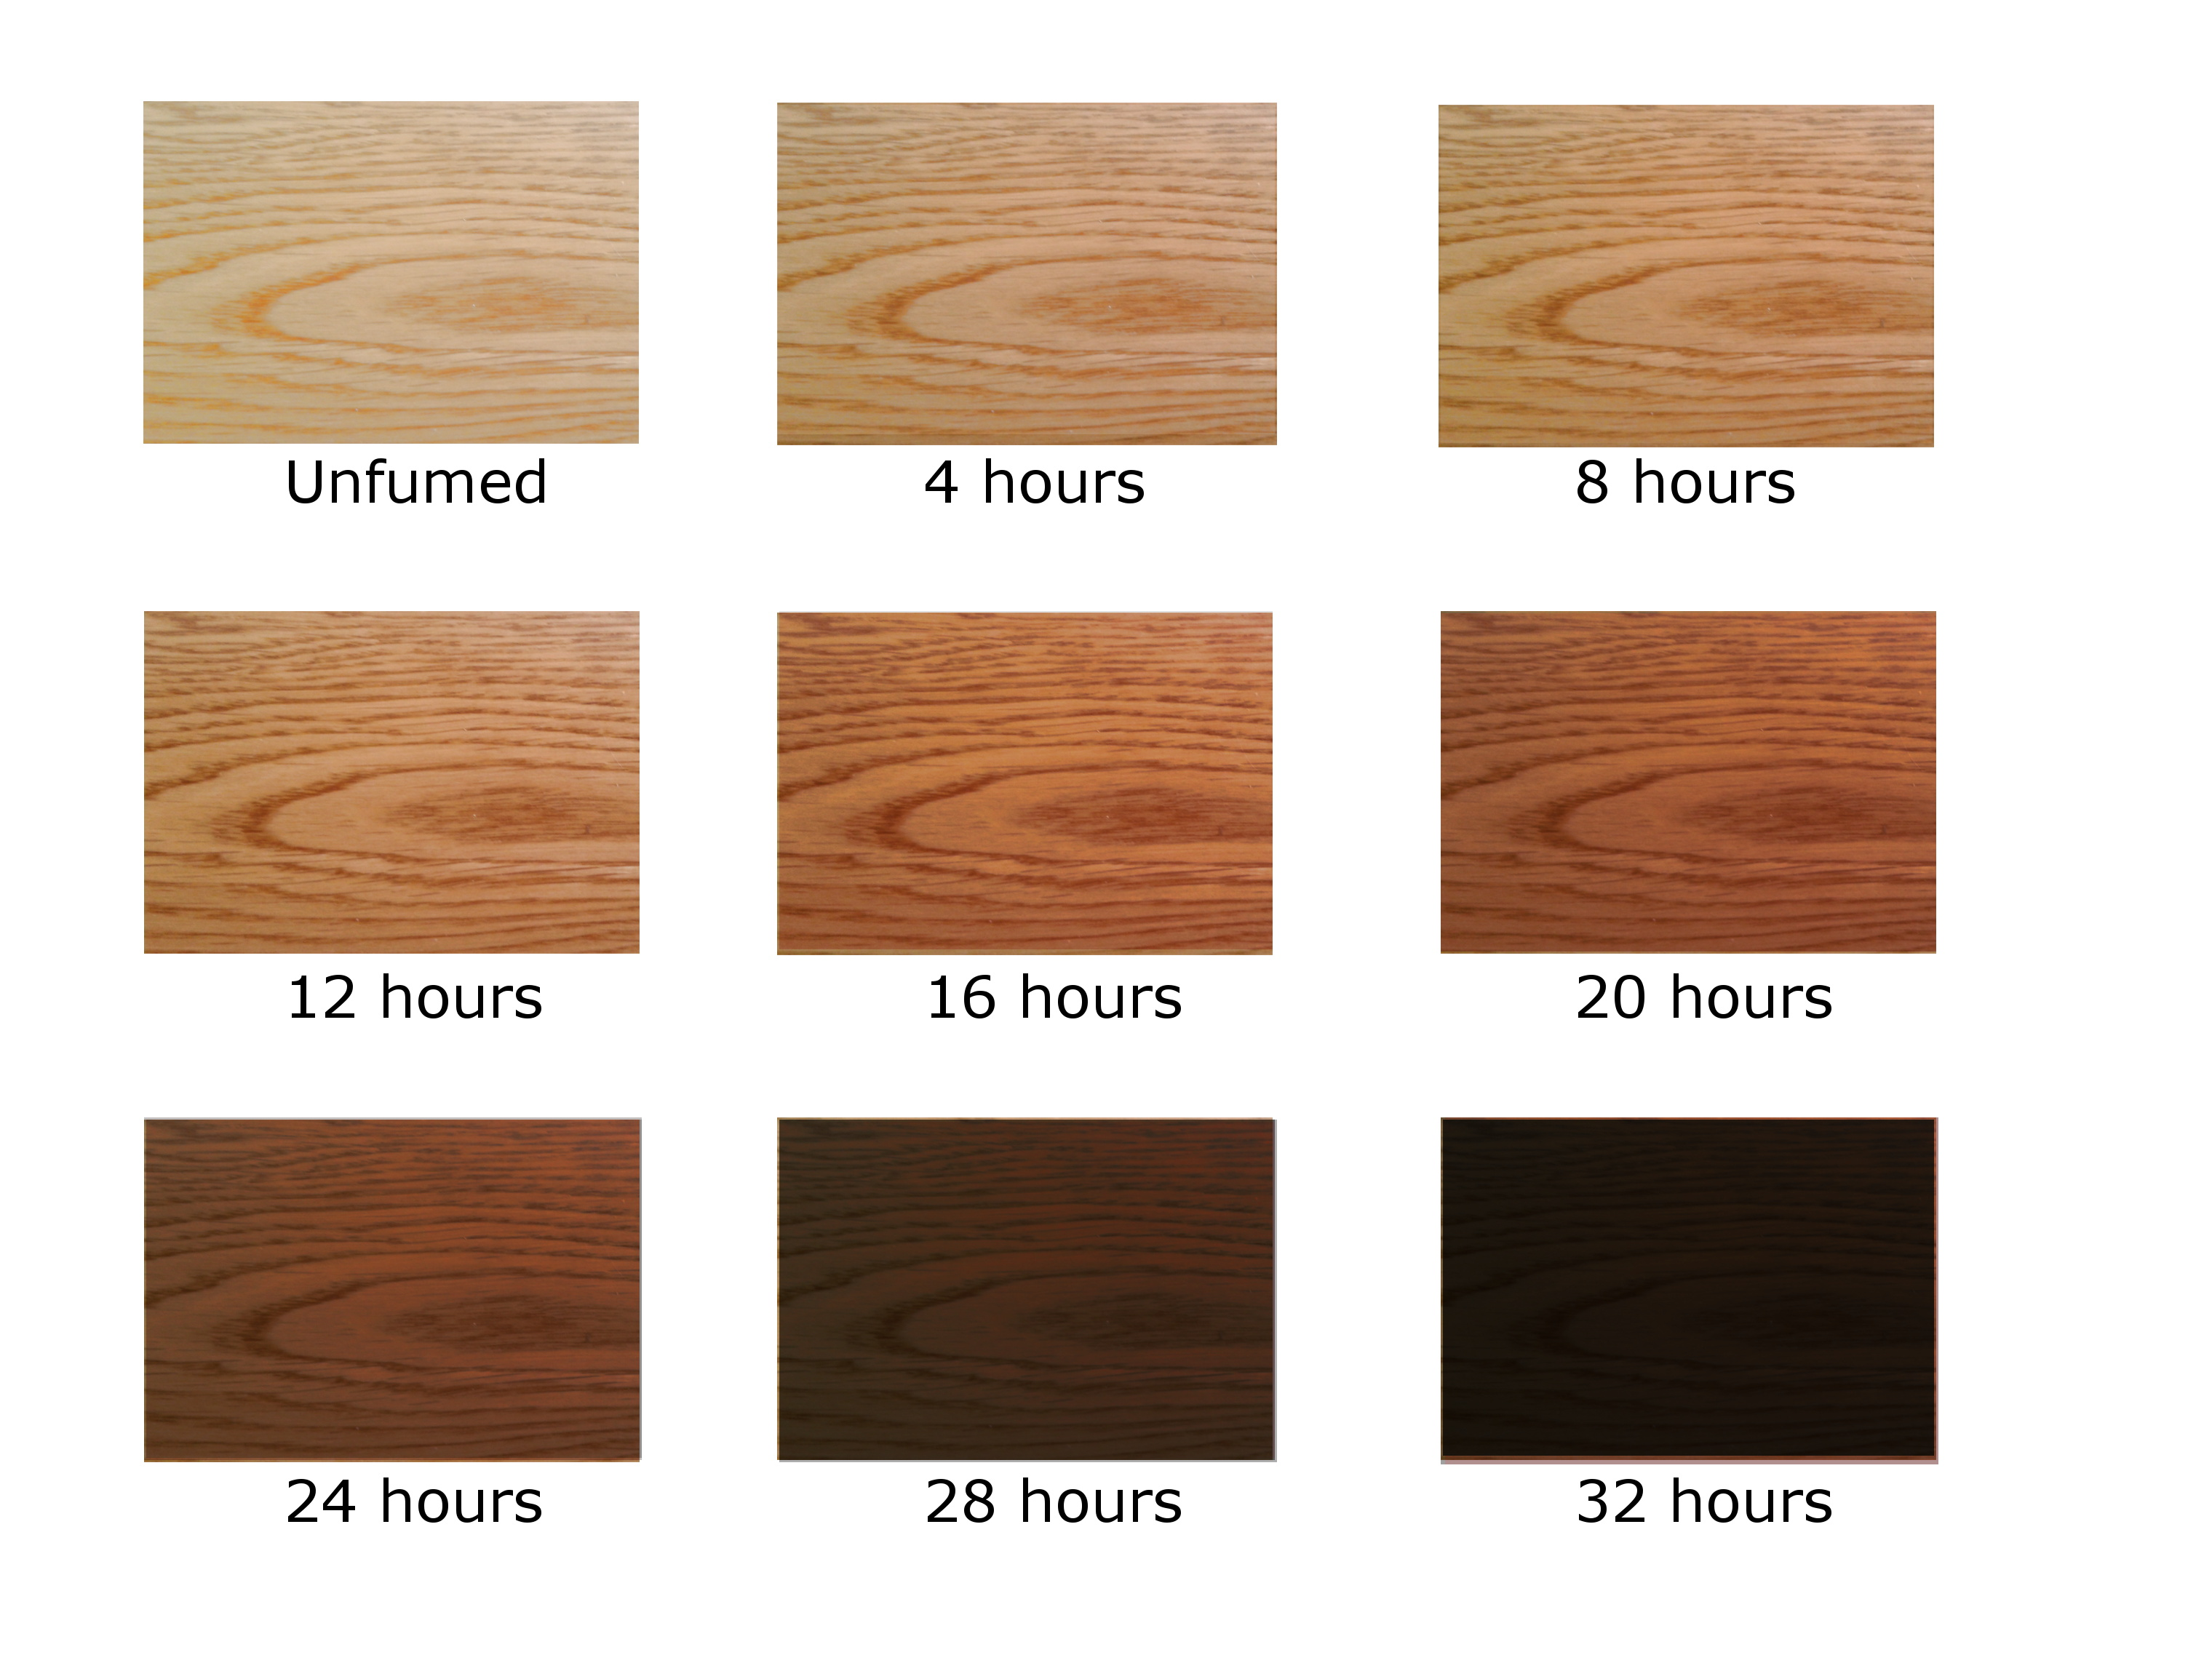 Chart Showing The Change In Colour Of Oak With Time Spent A Fuming Chamber